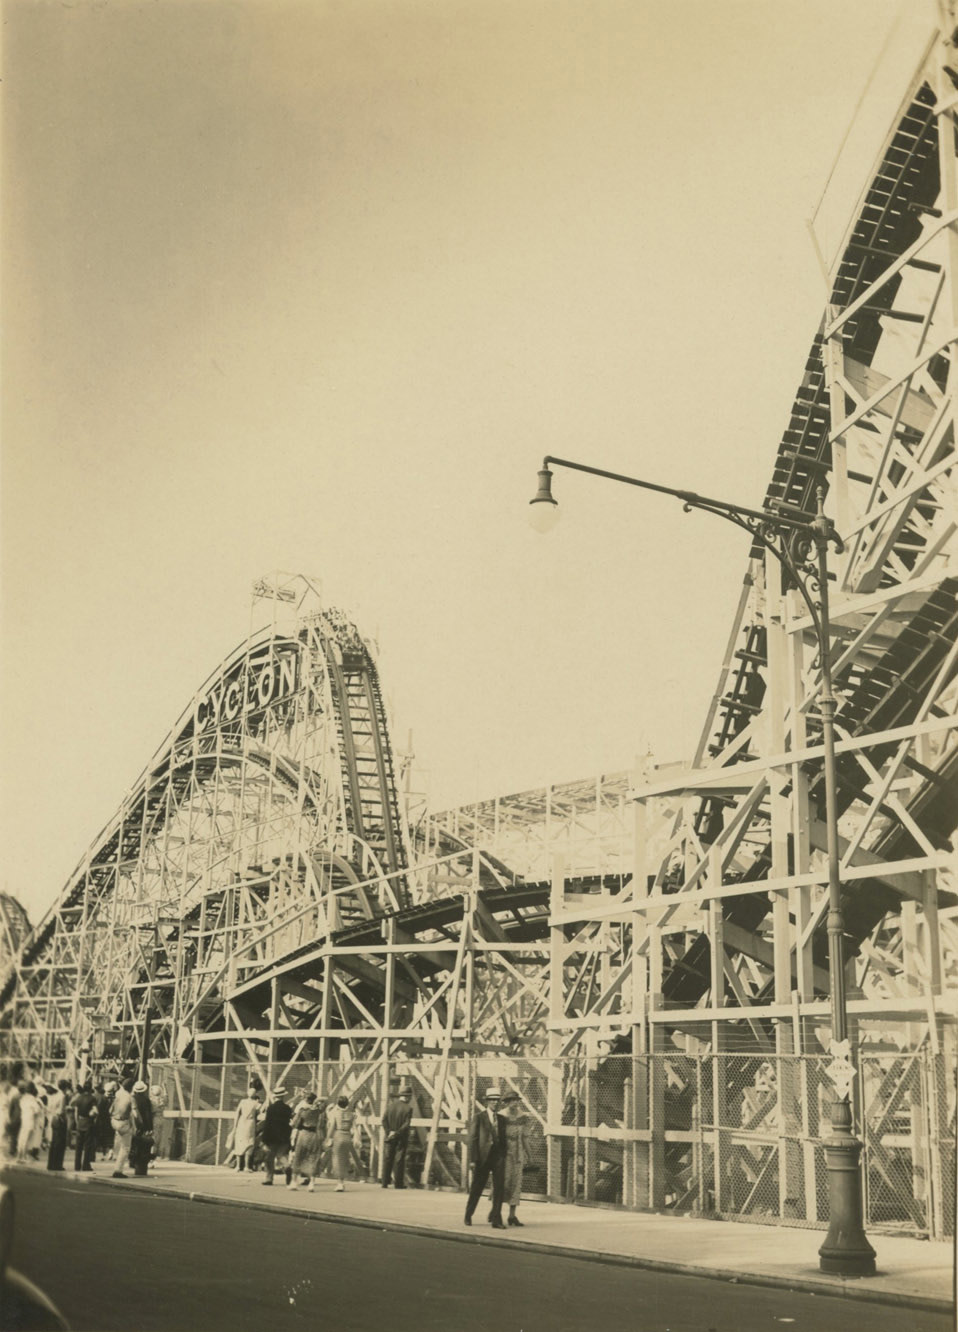 <span class=&#34;link fancybox-details-link&#34;><a href=&#34;/artists/88-alexander-artway/works/19993-alexander-artway-cyclone-ride-two-humps-coney-island-july-4-1935/&#34;>View Detail Page</a></span><div class=&#34;artist&#34;><strong>Alexander Artway</strong></div> <div class=&#34;title&#34;><em>Cyclone Ride, two humps, Coney Island</em>, July 4, 1935</div> <div class=&#34;signed_and_dated&#34;>Artist stamp, in ink, au verso<br /> Printed circa 1935</div> <div class=&#34;medium&#34;>Gelatin silver print</div> <div class=&#34;dimensions&#34;>4 ½ x 3 ¼ inch (11.43 x 8.26 cm) image<br /> 5 x 3 ¾ inch (12.70 x 9.53 cm) paper</div> <div class=&#34;edition_details&#34;></div>